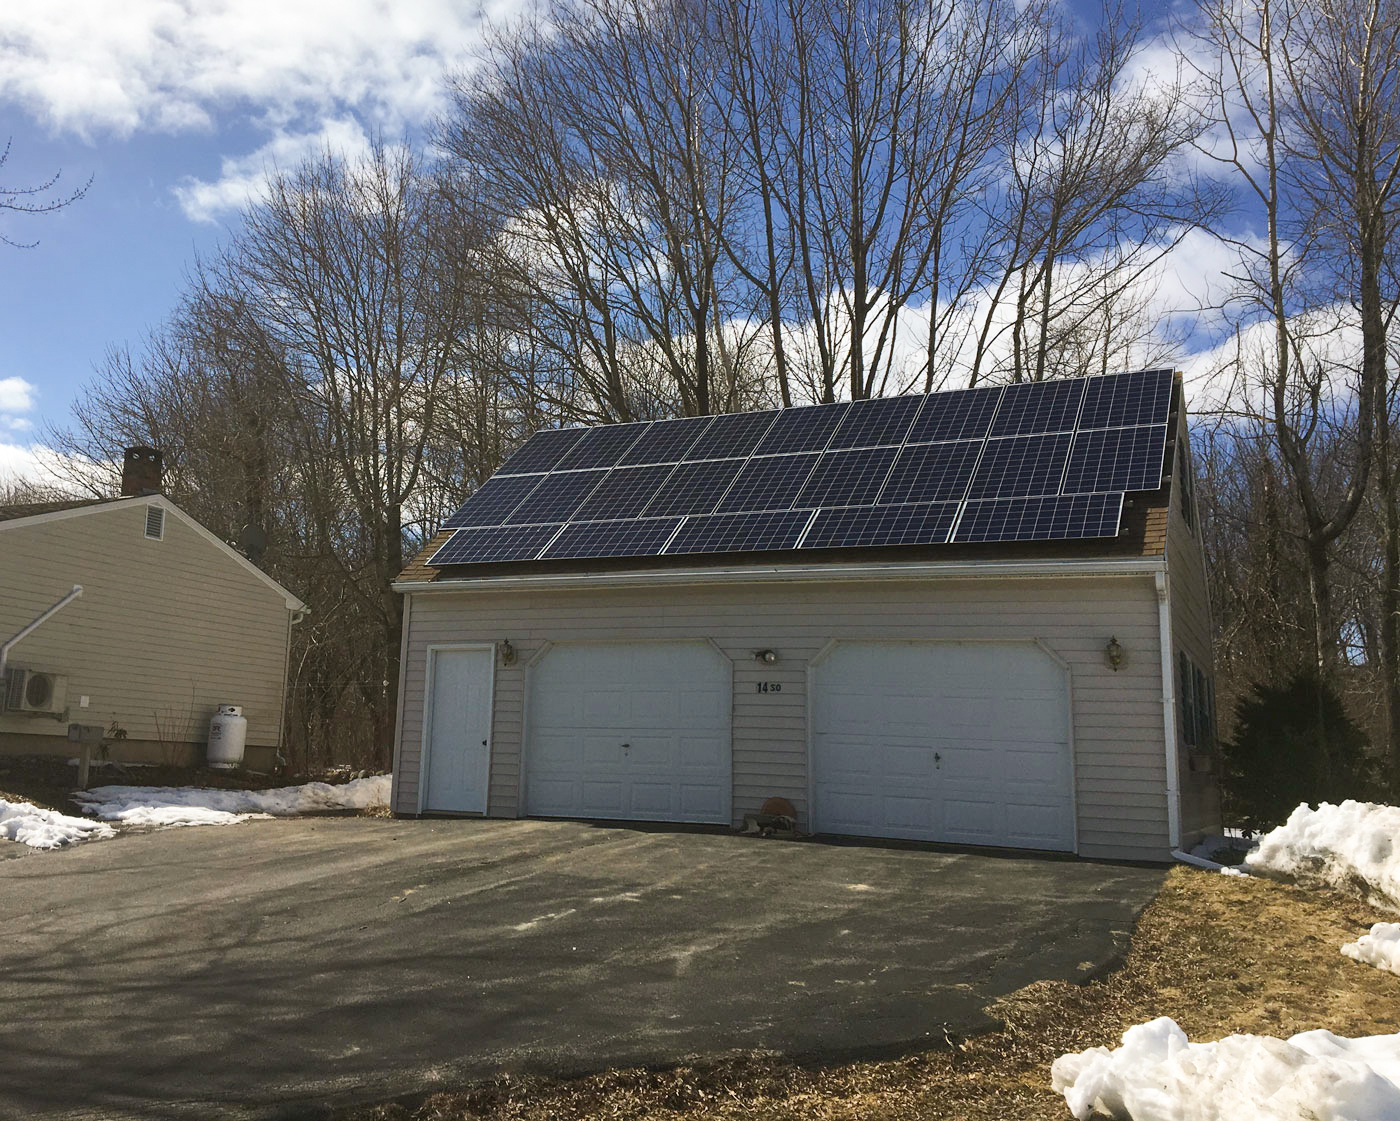 Rockland Maine Solar Projects Revision Energy